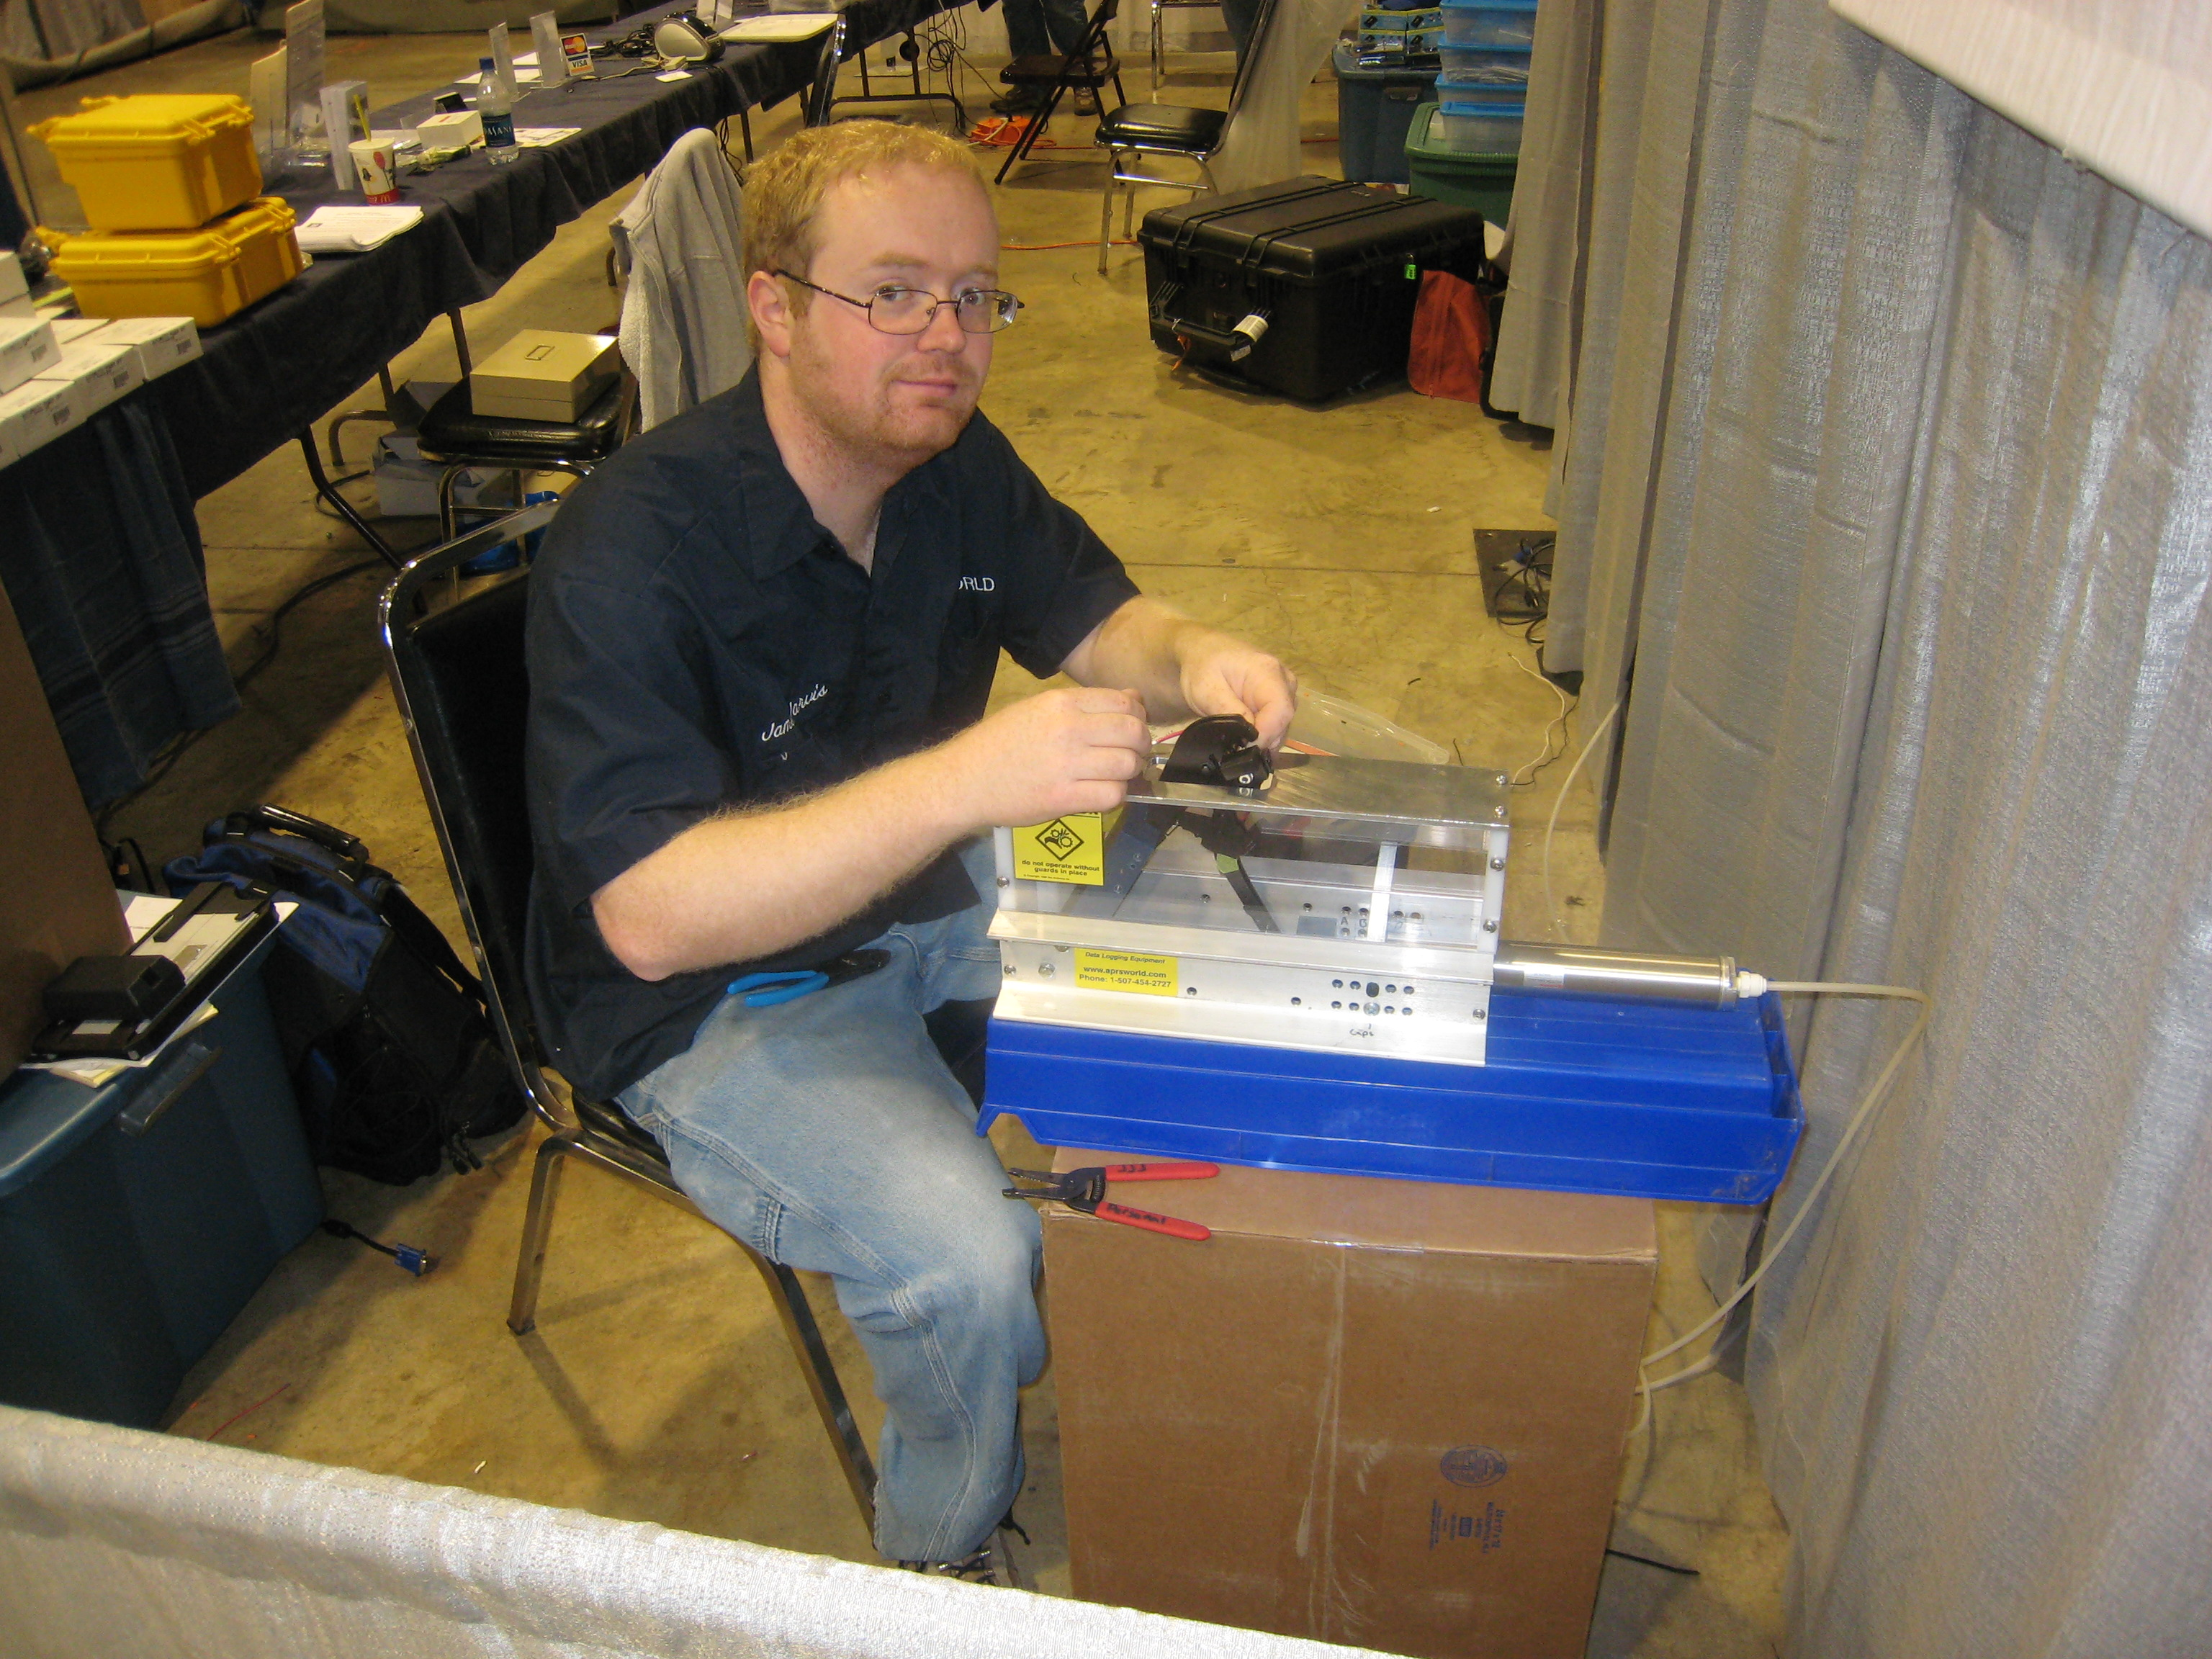 James Jarvis crimps Power Pole connectors on APO3s at the Dayton Hamvention. Note the cool pnuematic crimper.